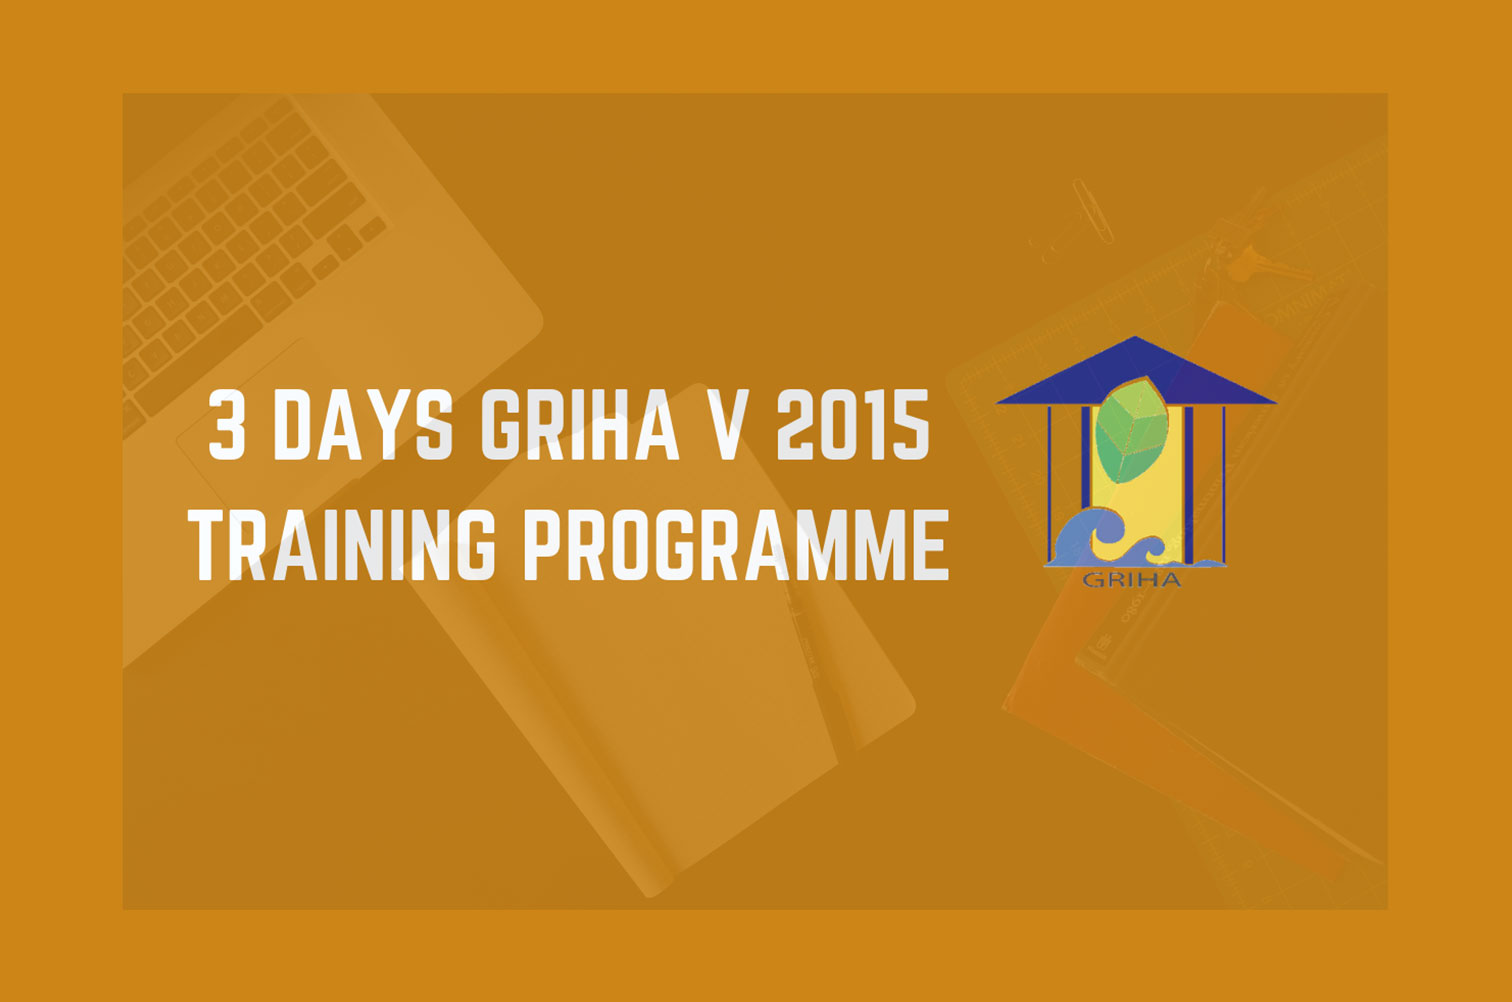 3-Day GRIHA V 2015 Training Programme at Nagpur